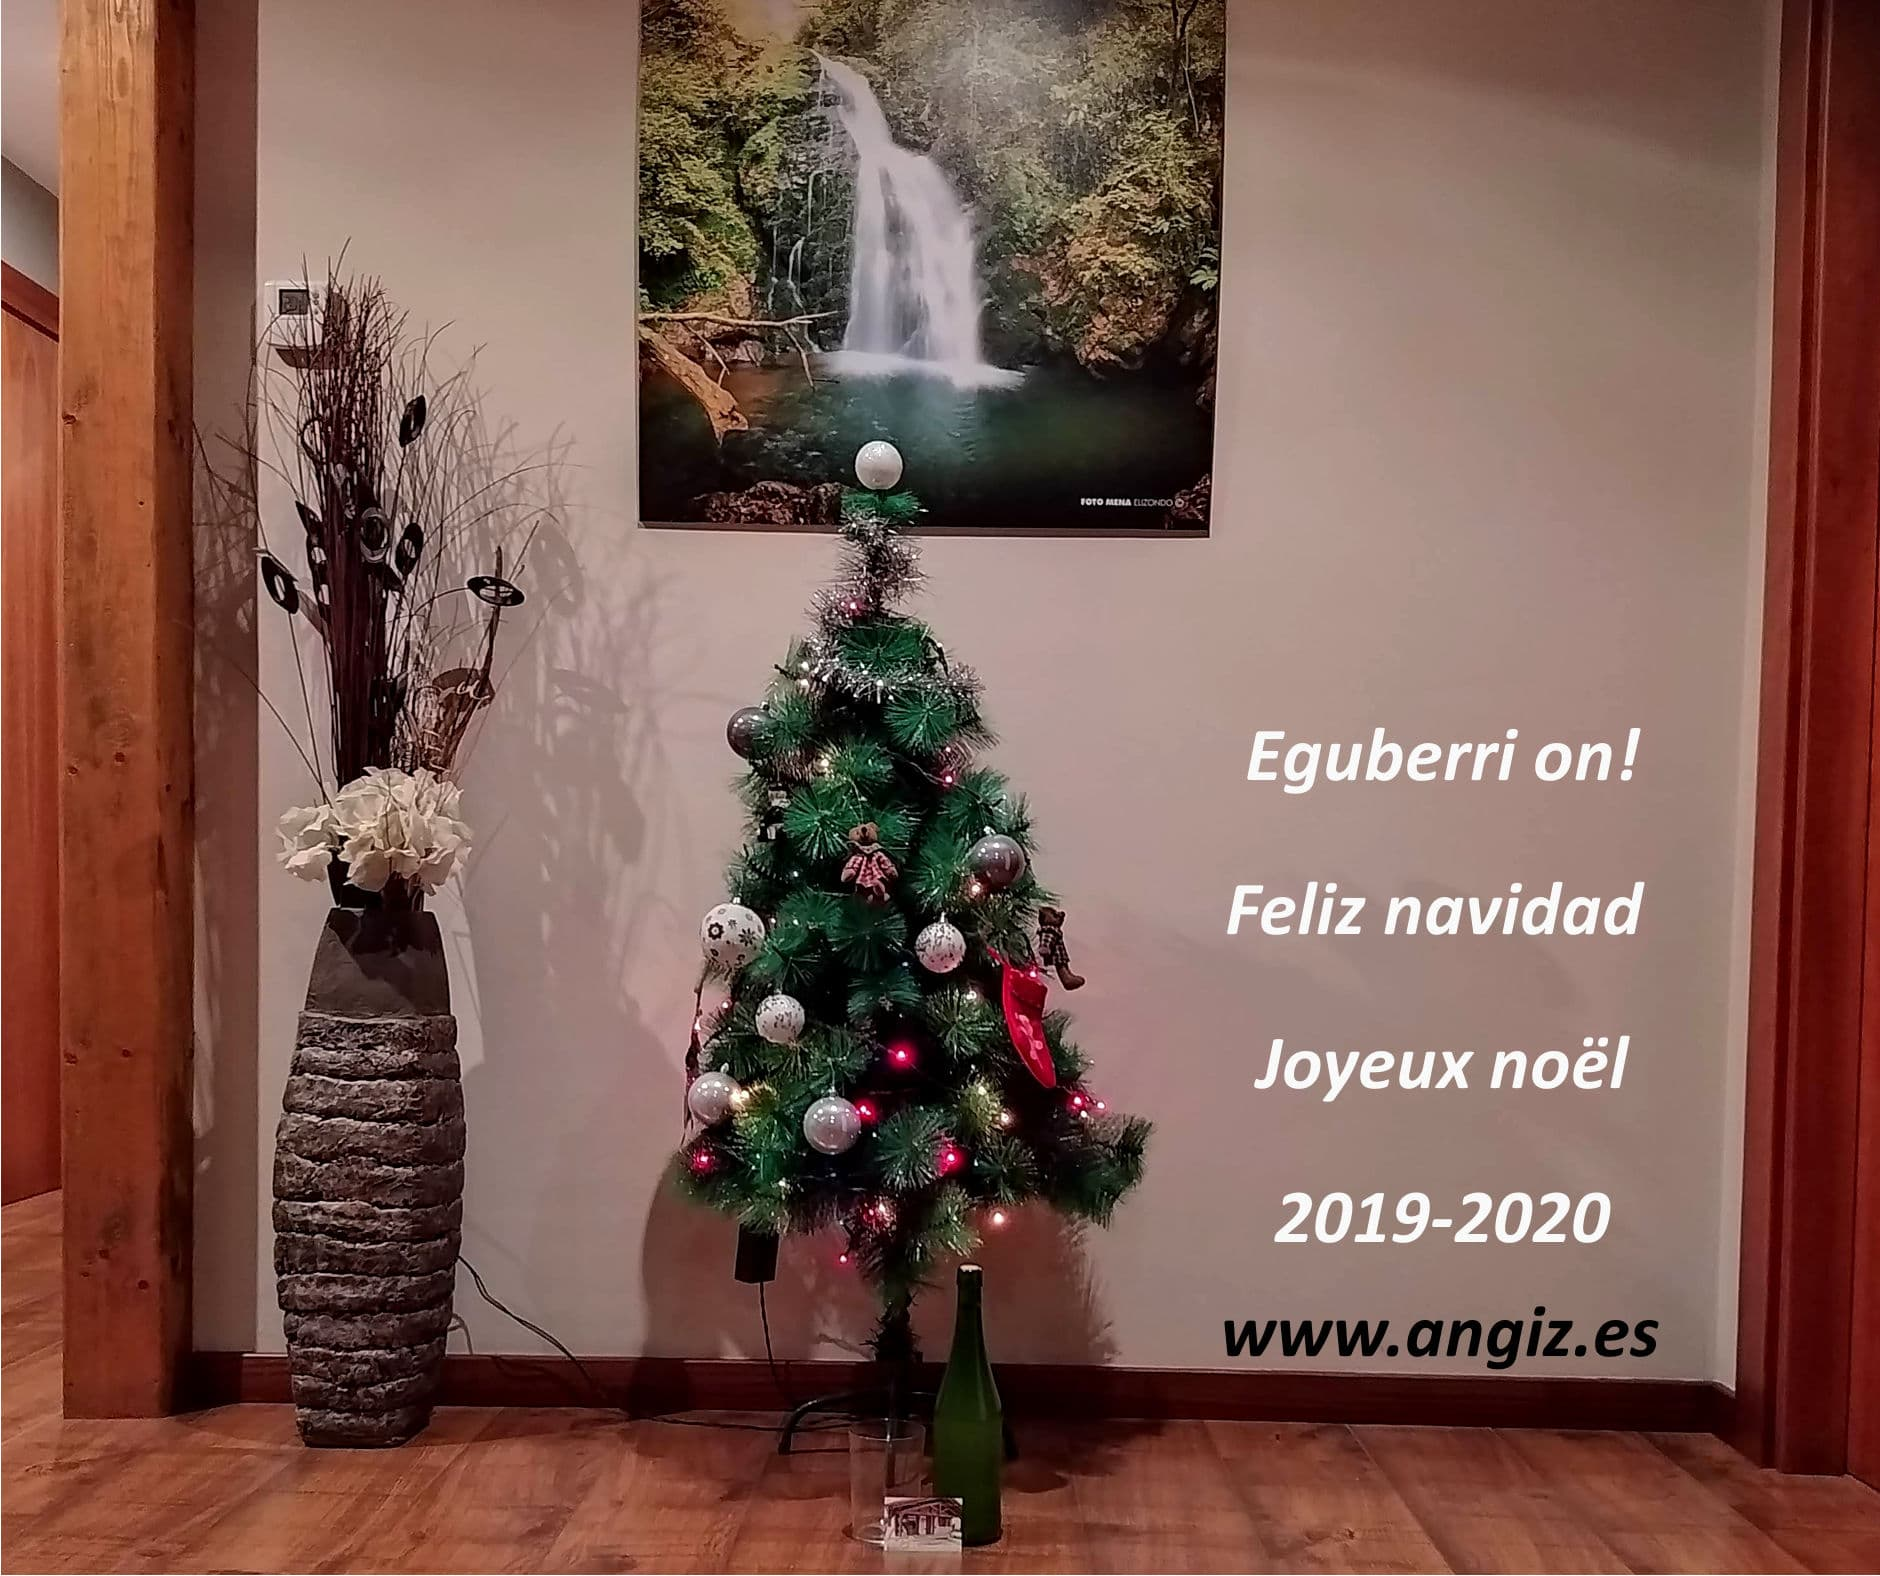 You are currently viewing Eguberri on!